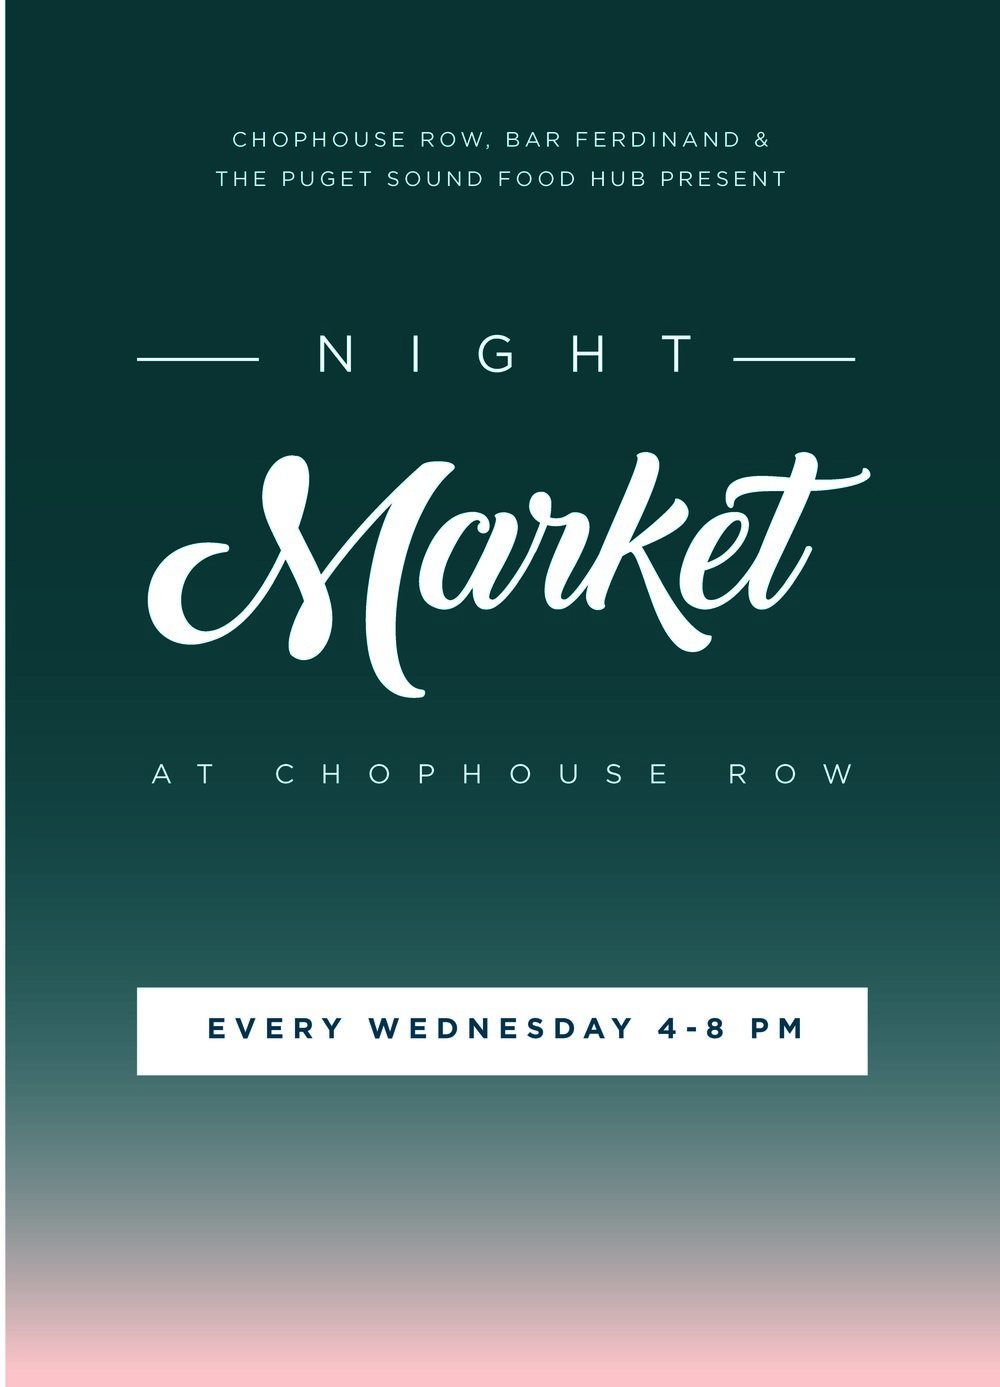 Night Market  Every Wednesday night James Beard Award winning chef Matt Dillon fills our Chophouse Row courtyard with farms and food.